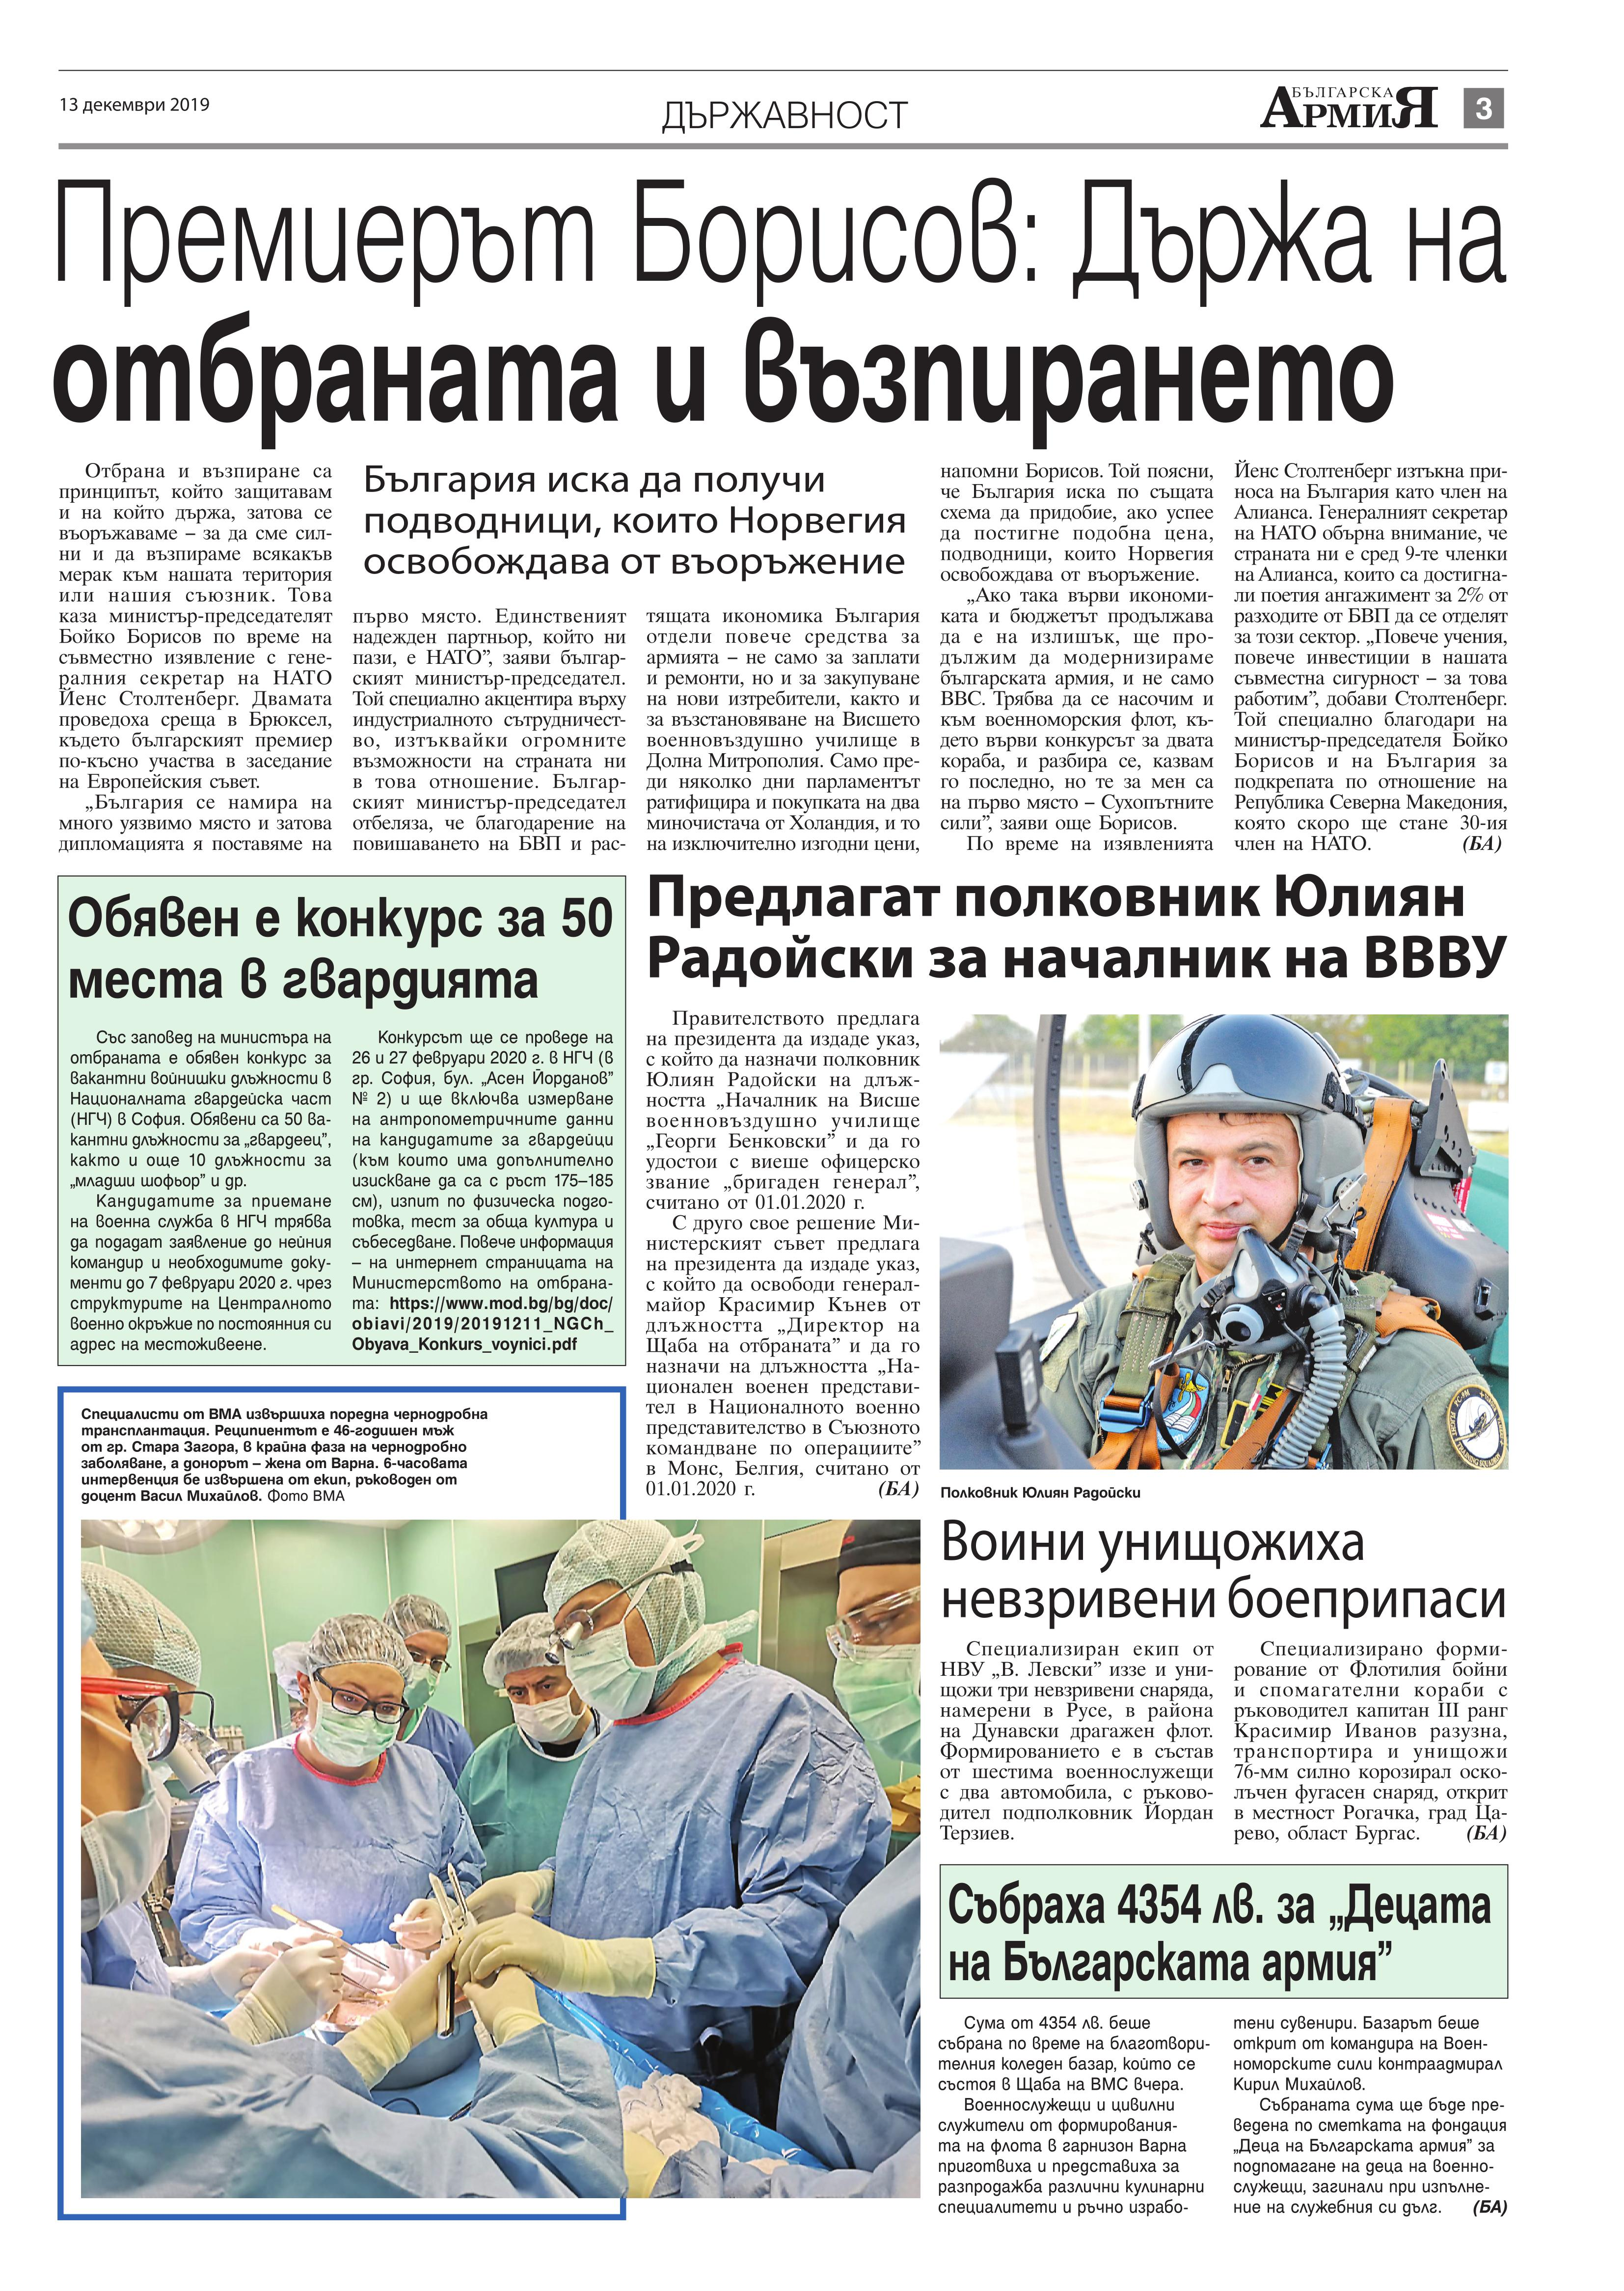 https://www.armymedia.bg/wp-content/uploads/2015/06/03.page1_-116.jpg